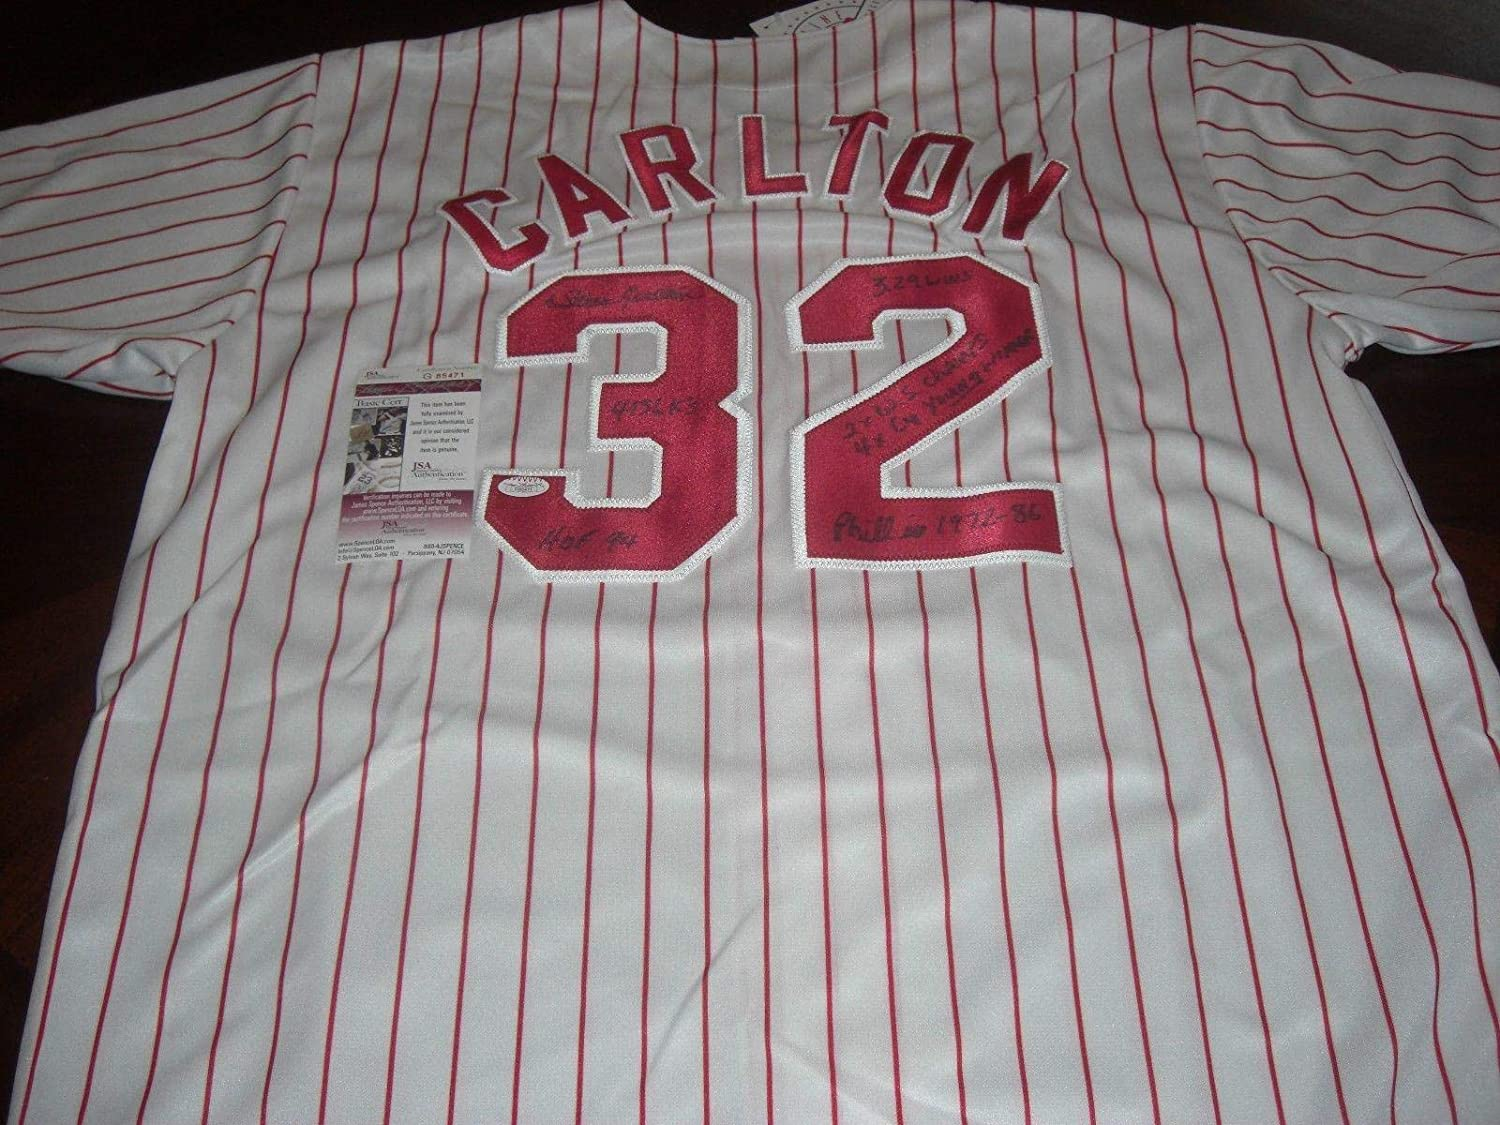 Autographed Steve Carlton Jersey - hof 94 4136 Ks 4x Cy Young 2x Ws coa -  JSA Certified - Autographed MLB Jerseys at Amazon s Sports Collectibles  Store 95130b1a165